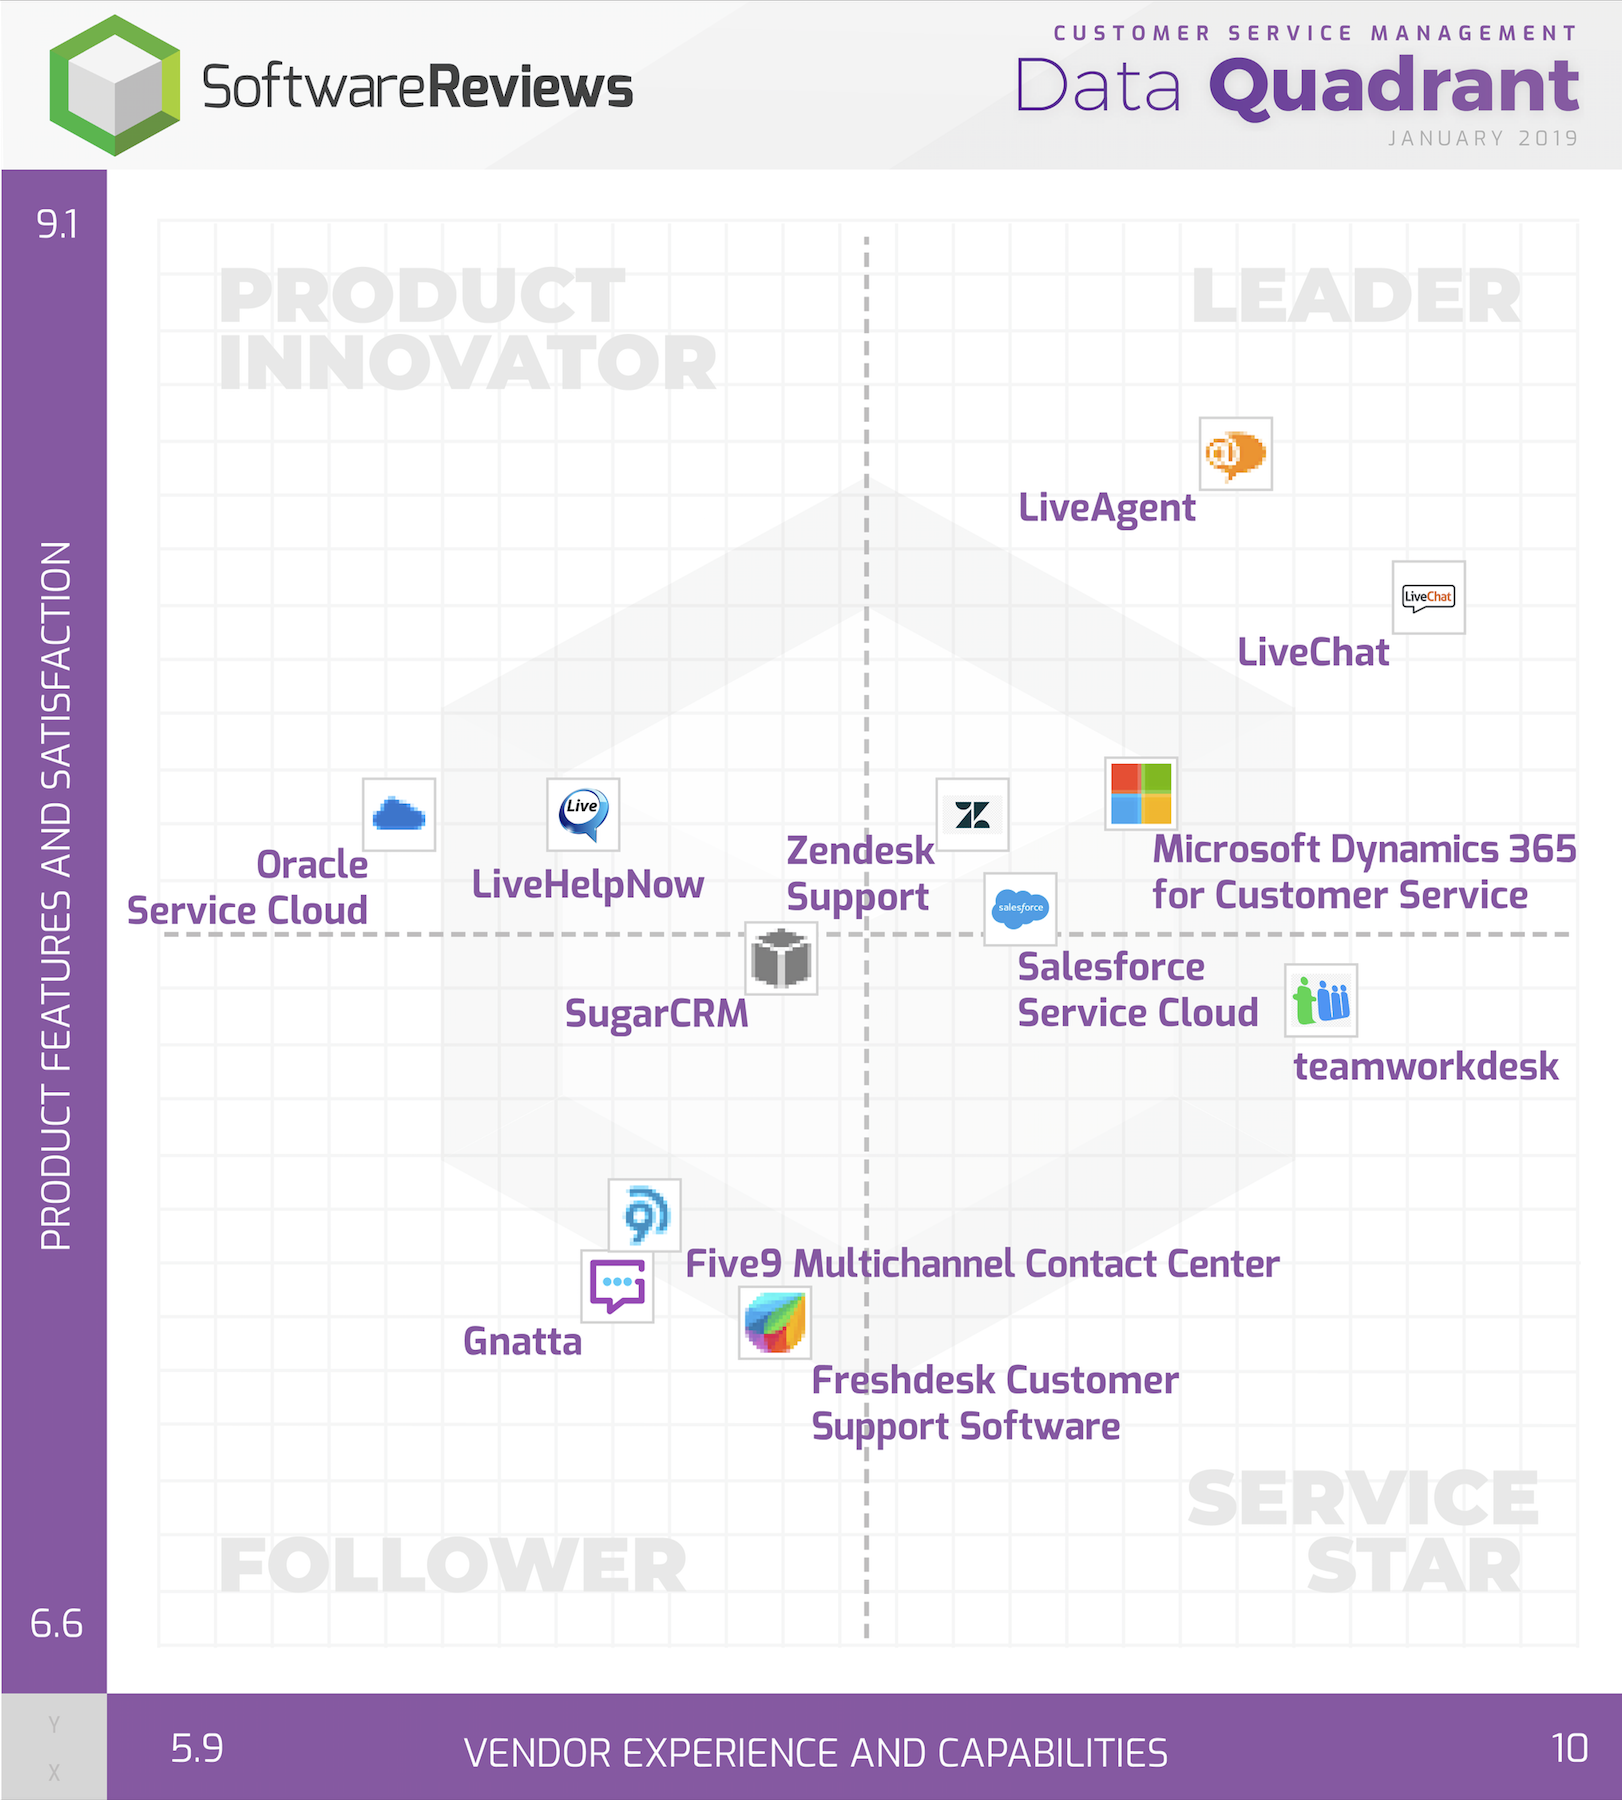 Customer Service Management Data Quadrant